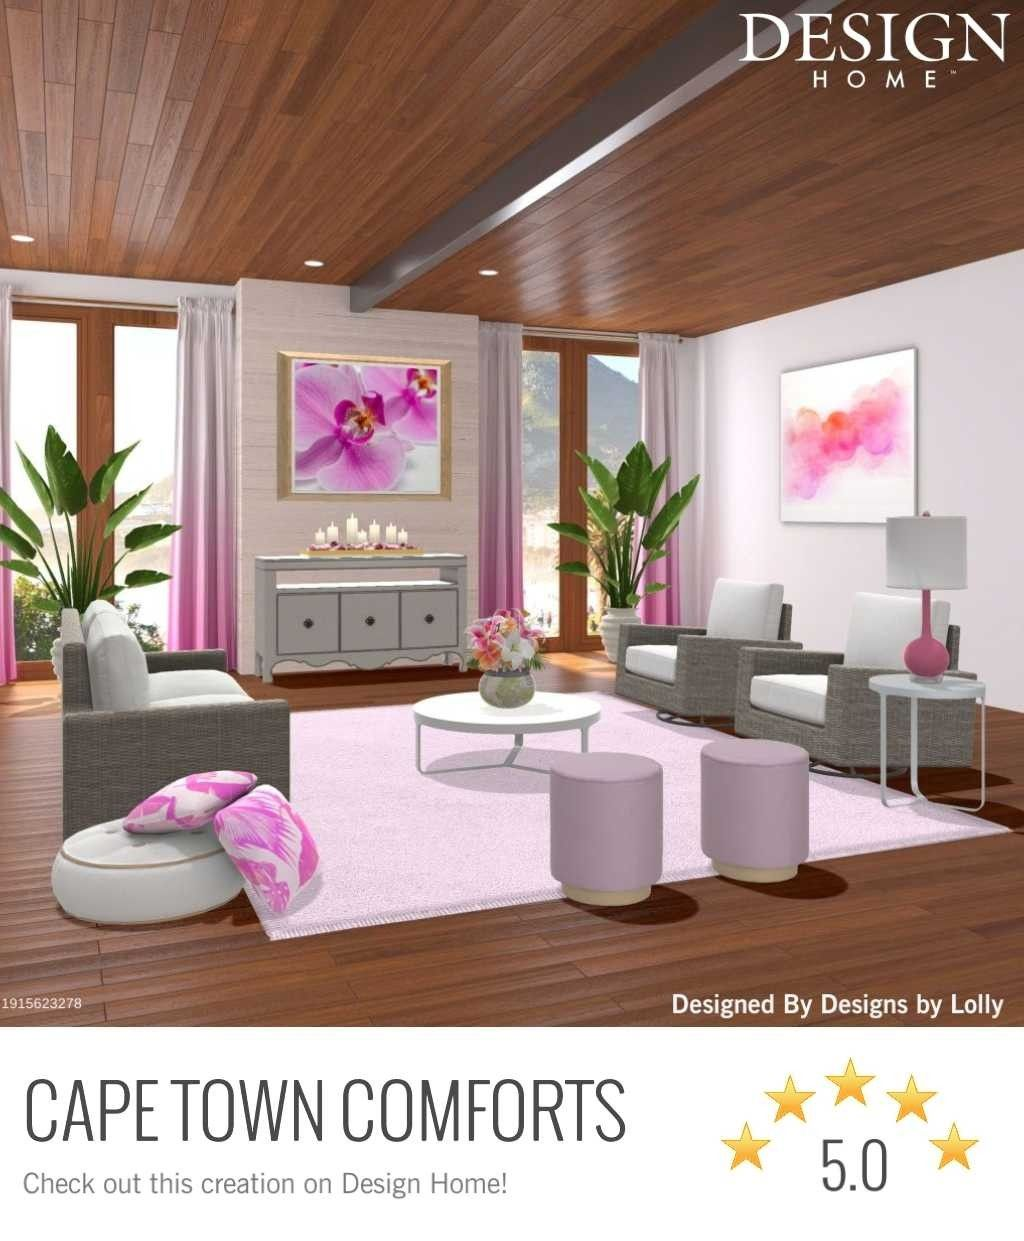 Pin By Sarah Sever On 1 Gaming Design Home House Design Games Design Home App House Design